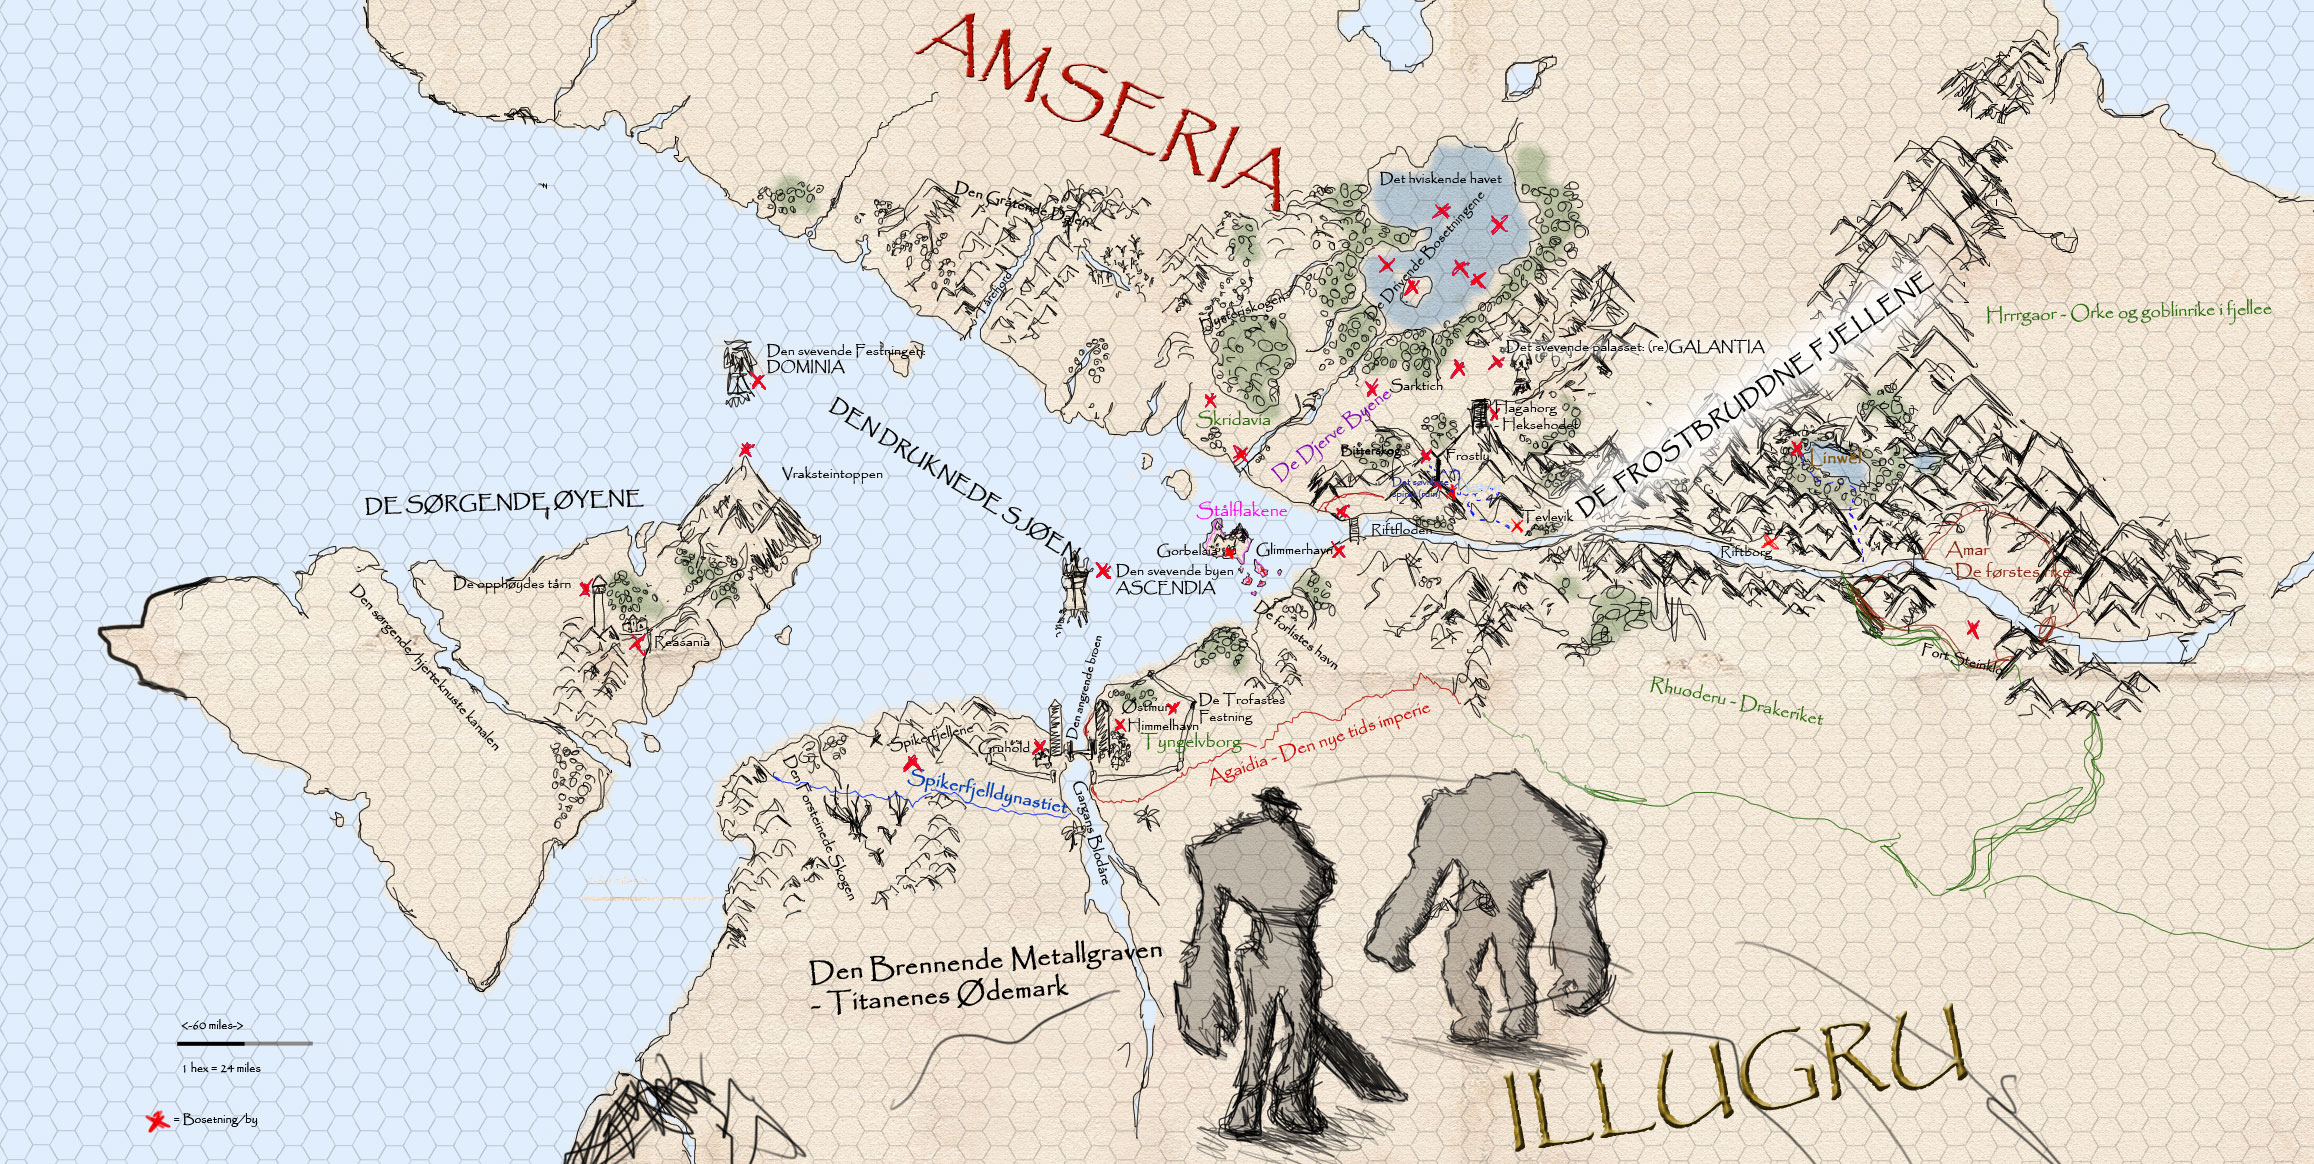 Amseria-og-Illugru----big-size2-small-map.jpg